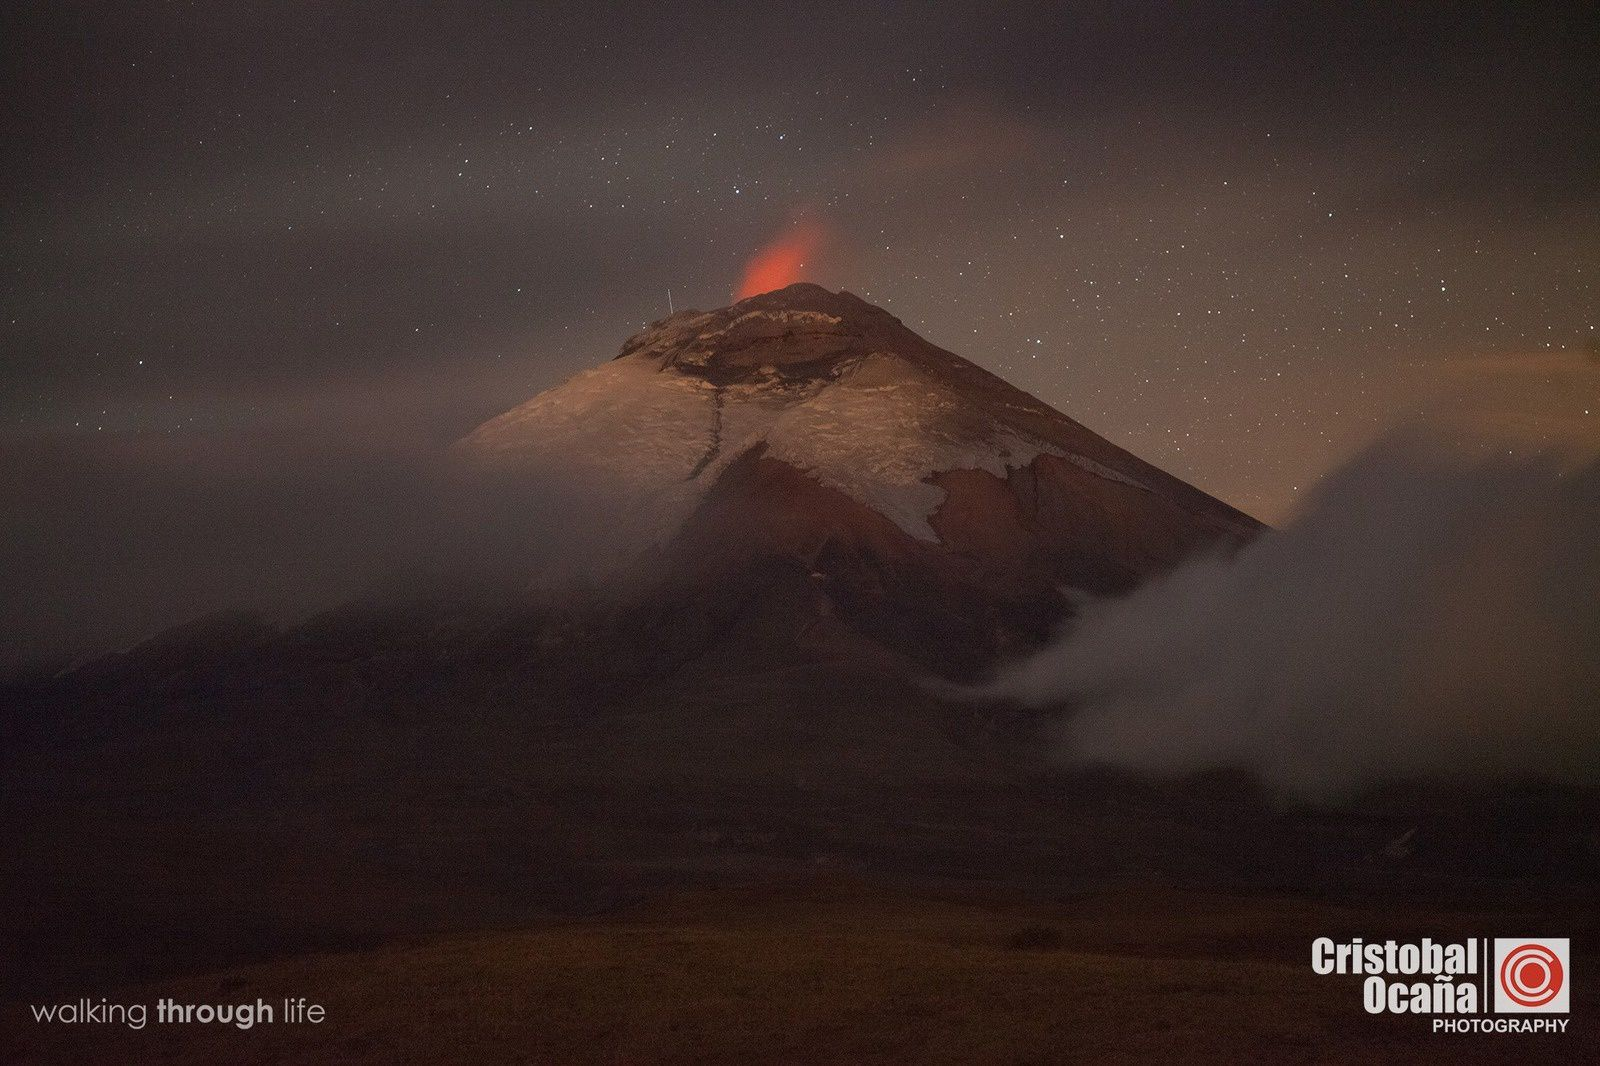 Incandescent summit in Cotopaxi, already noticed the 09/26/2015 by Cristóbal Ocaña via Foto Ecuador